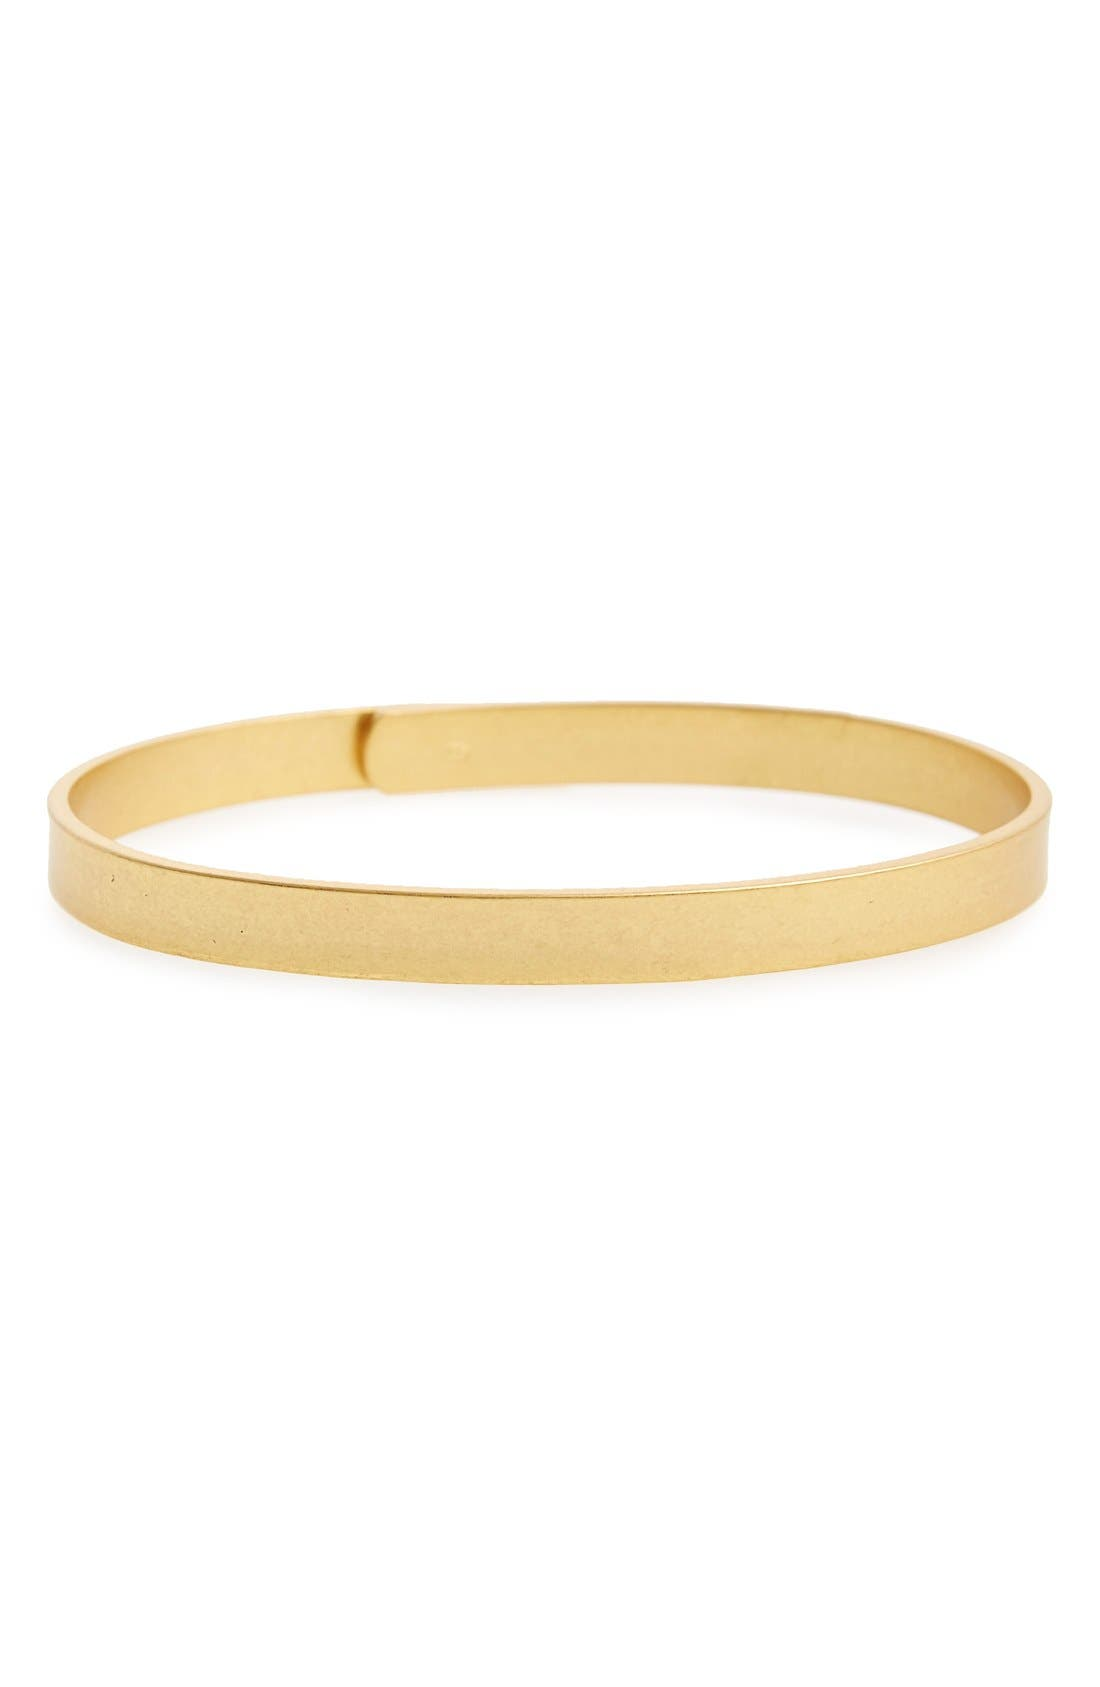 Alternate Image 1 Selected - Madewell Glider Bangle